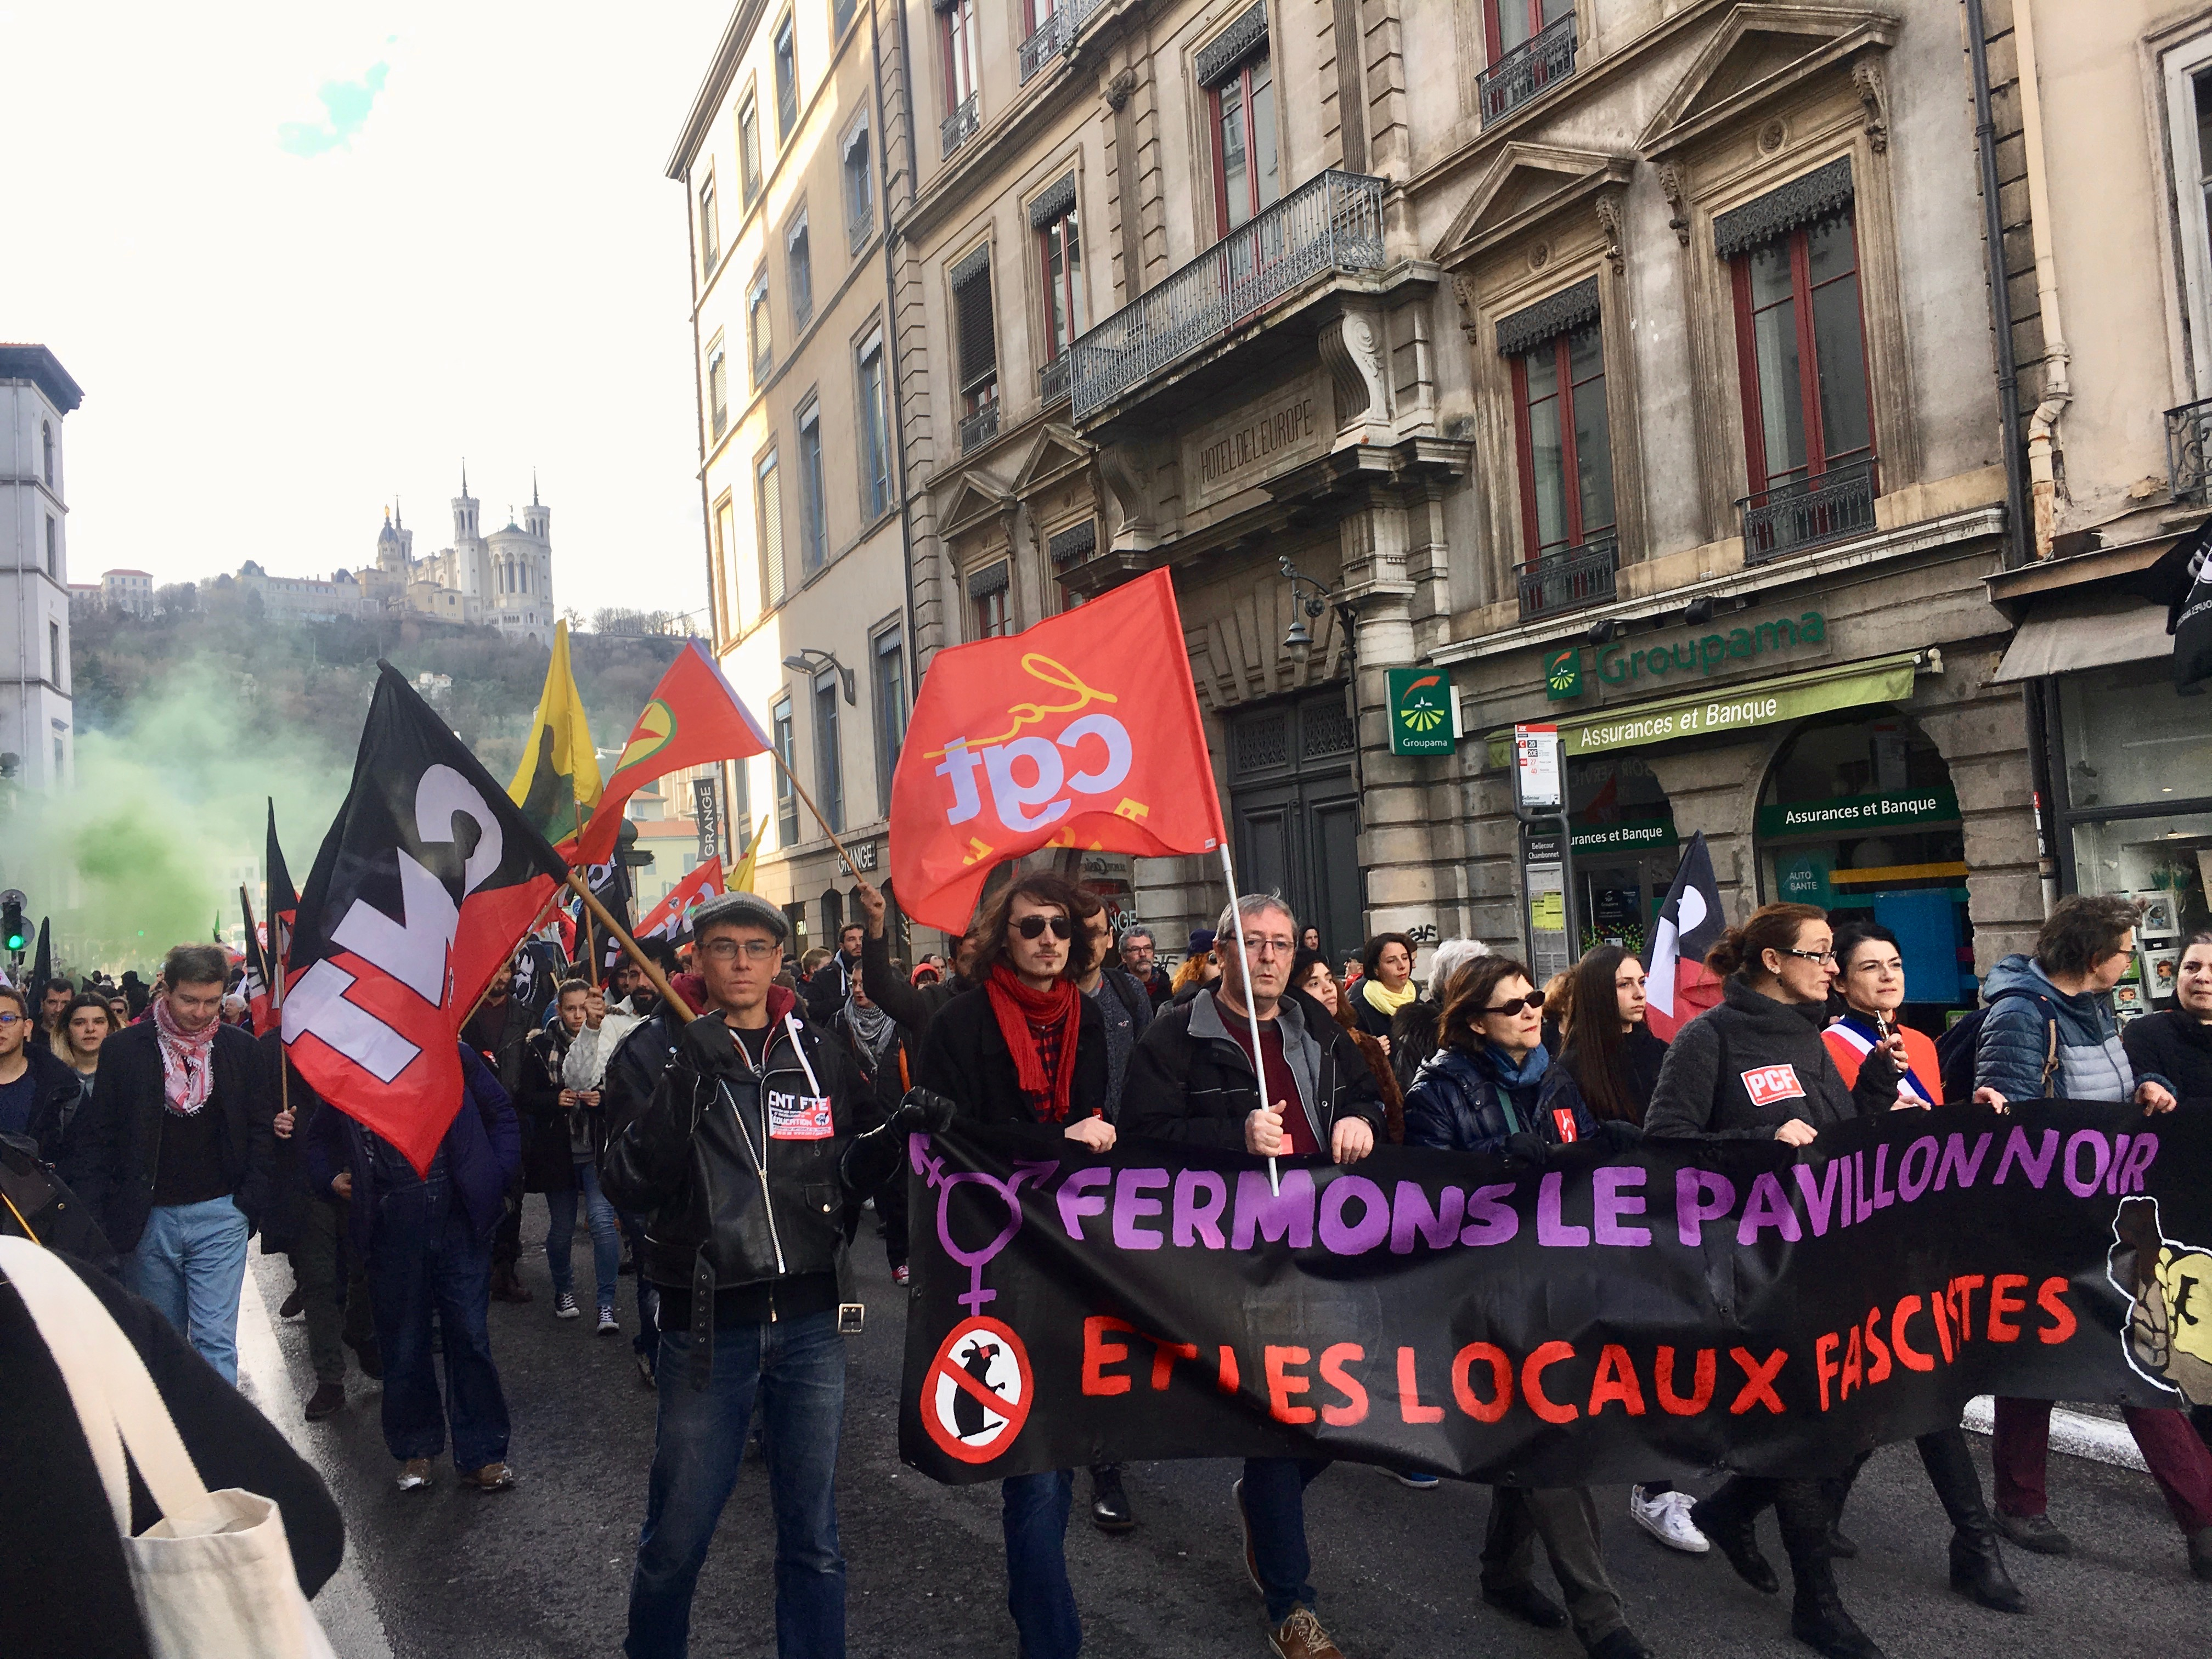 Manifestation antifasciste contre le bastion social